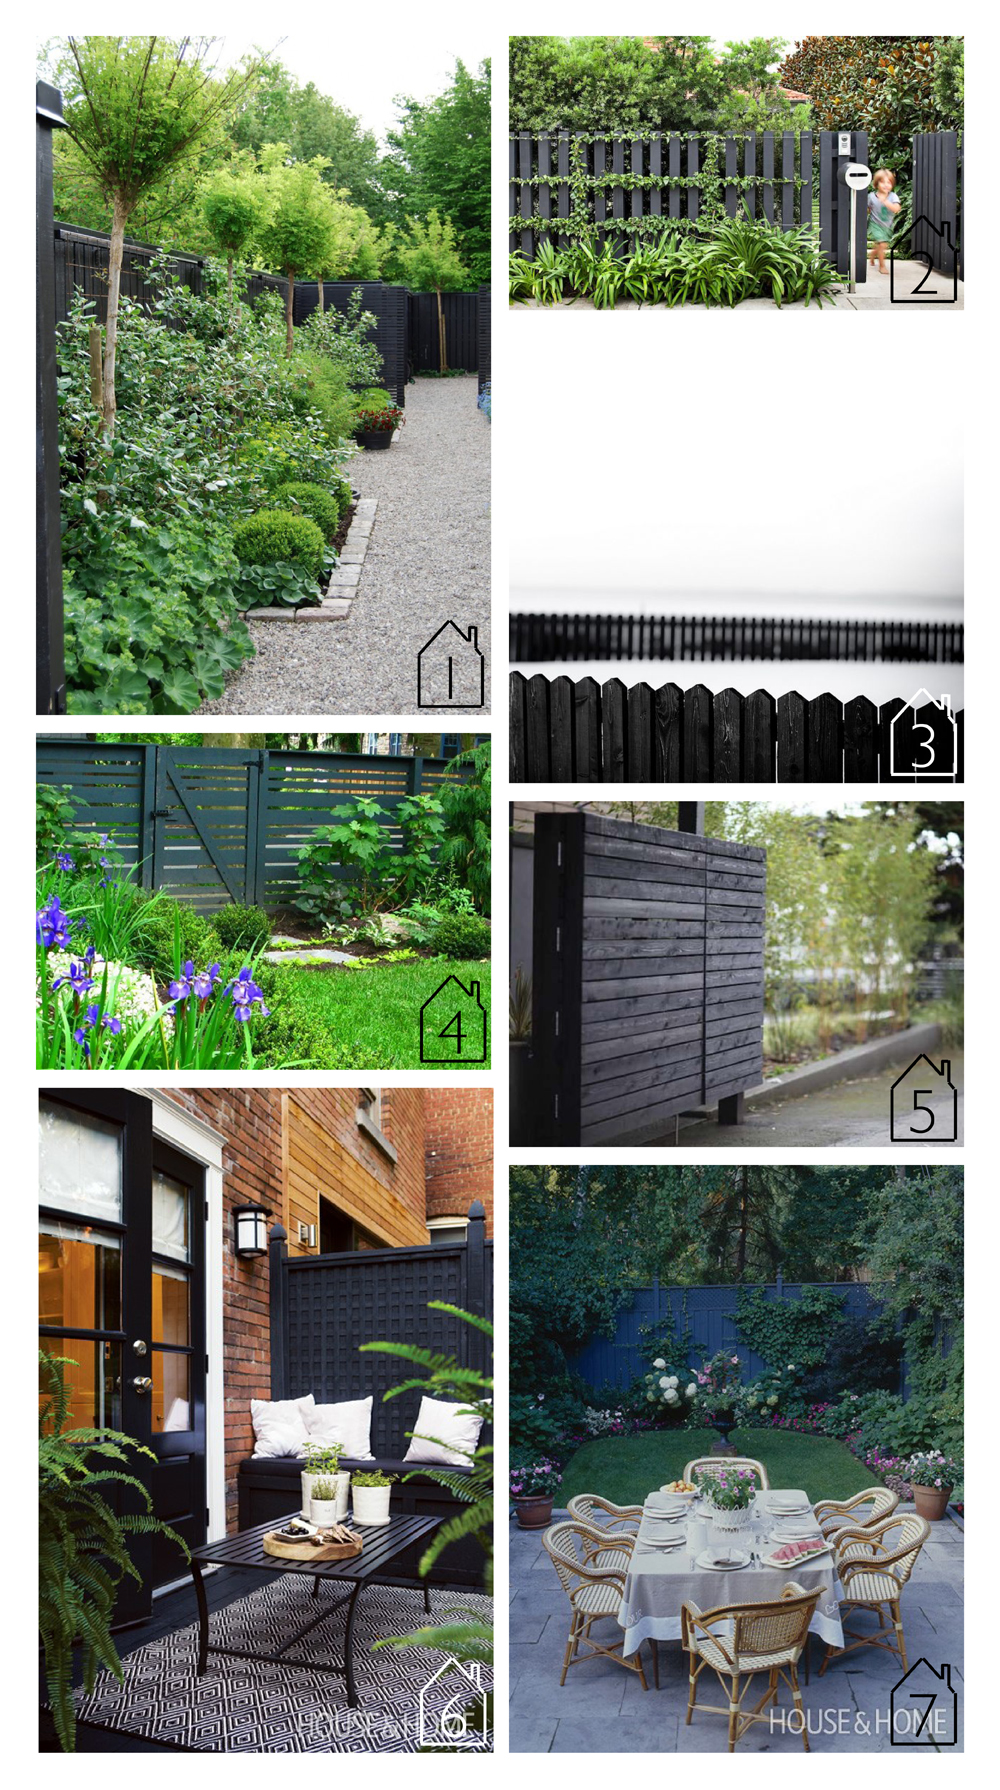 1. via  GARDENISTA photo by Maria Drumo Sundstrom 2. via  GARDENISTA design by  Anthony Wyer  3. source unknown 4. via  Landscaping Network  design by  Livable Landscapes  5. design by  Wittman + Estes  6. via  House & Home  7. via  House & Home